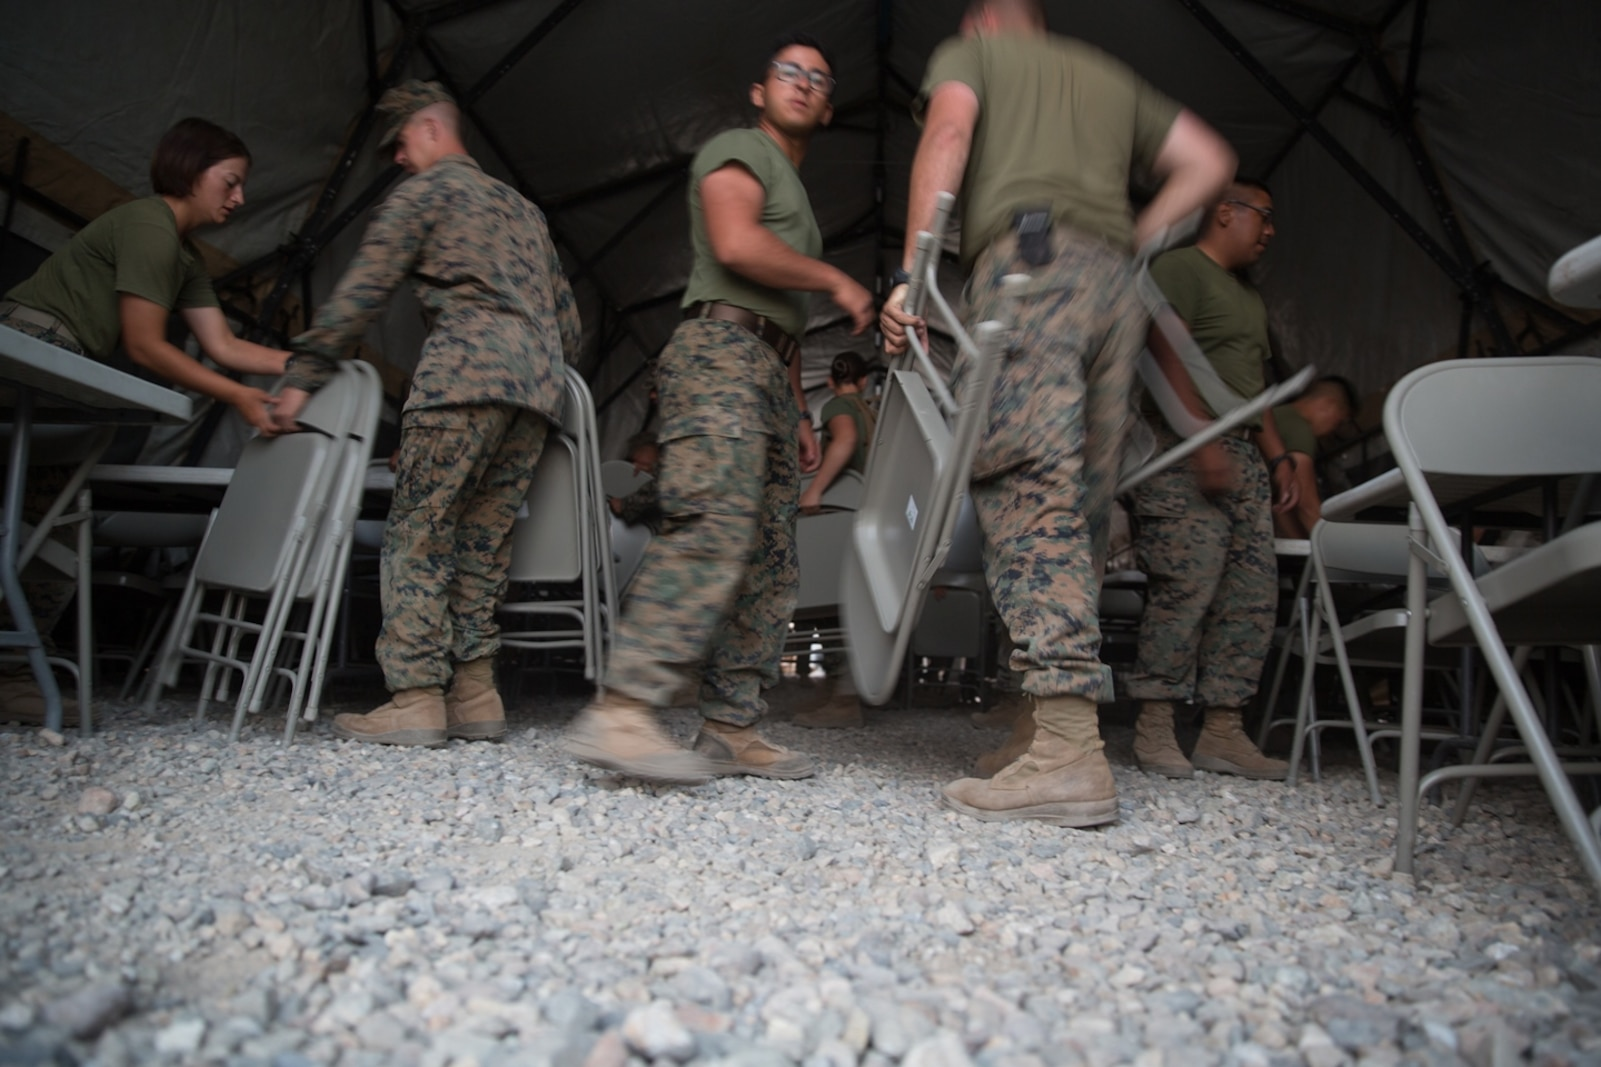 U.S. Marines with Combat Logistics Battalion 5 (CLB-5), Combat Logistics Regiment 1, 1st Marine Logistics Group, place chairs inside an expeditionary mess hall on the Marine Corps Mountain Warfare Training Center Bridgeport, Calif., June 14, 2017. CLB-5 supports the 2d Battalion, 8th Marine Regiment, 2d Marine Division, logistically by tackling the technical aspects of mountainous and cold weather operations by providing them chow, water, and fuel. (U.S. Marine Corps photo by Lance Cpl. Timothy Shoemaker)